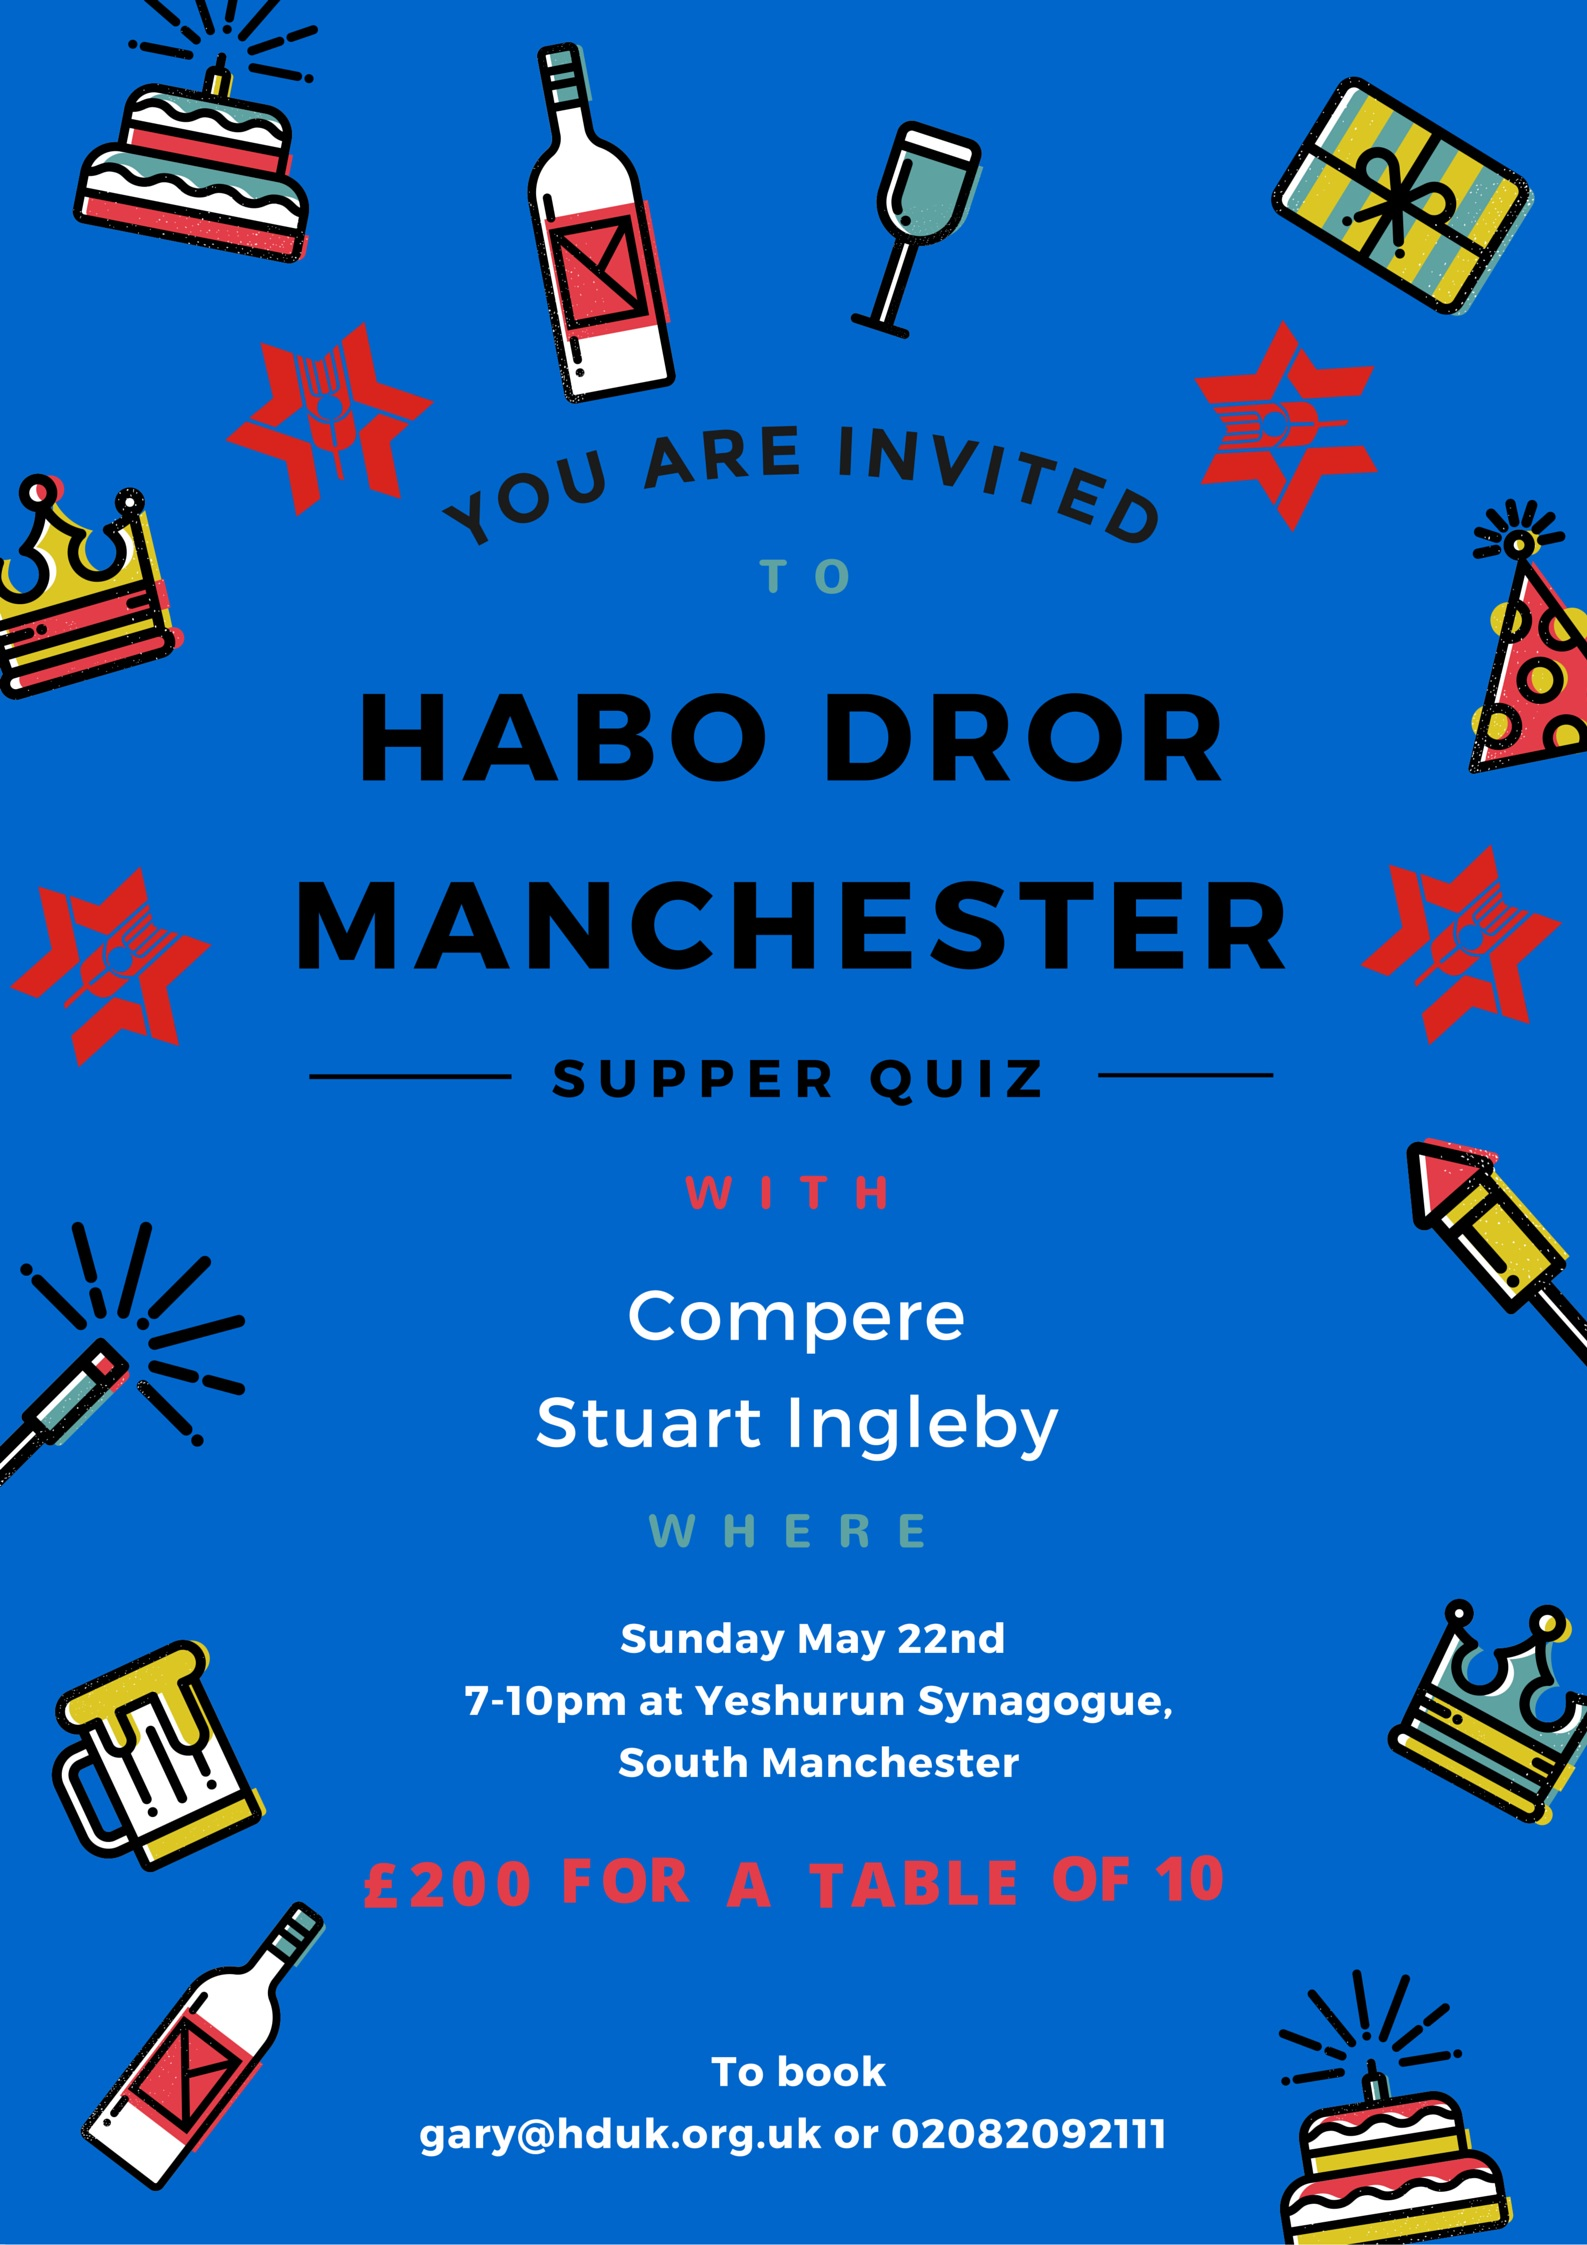 Manchester Supper Quiz